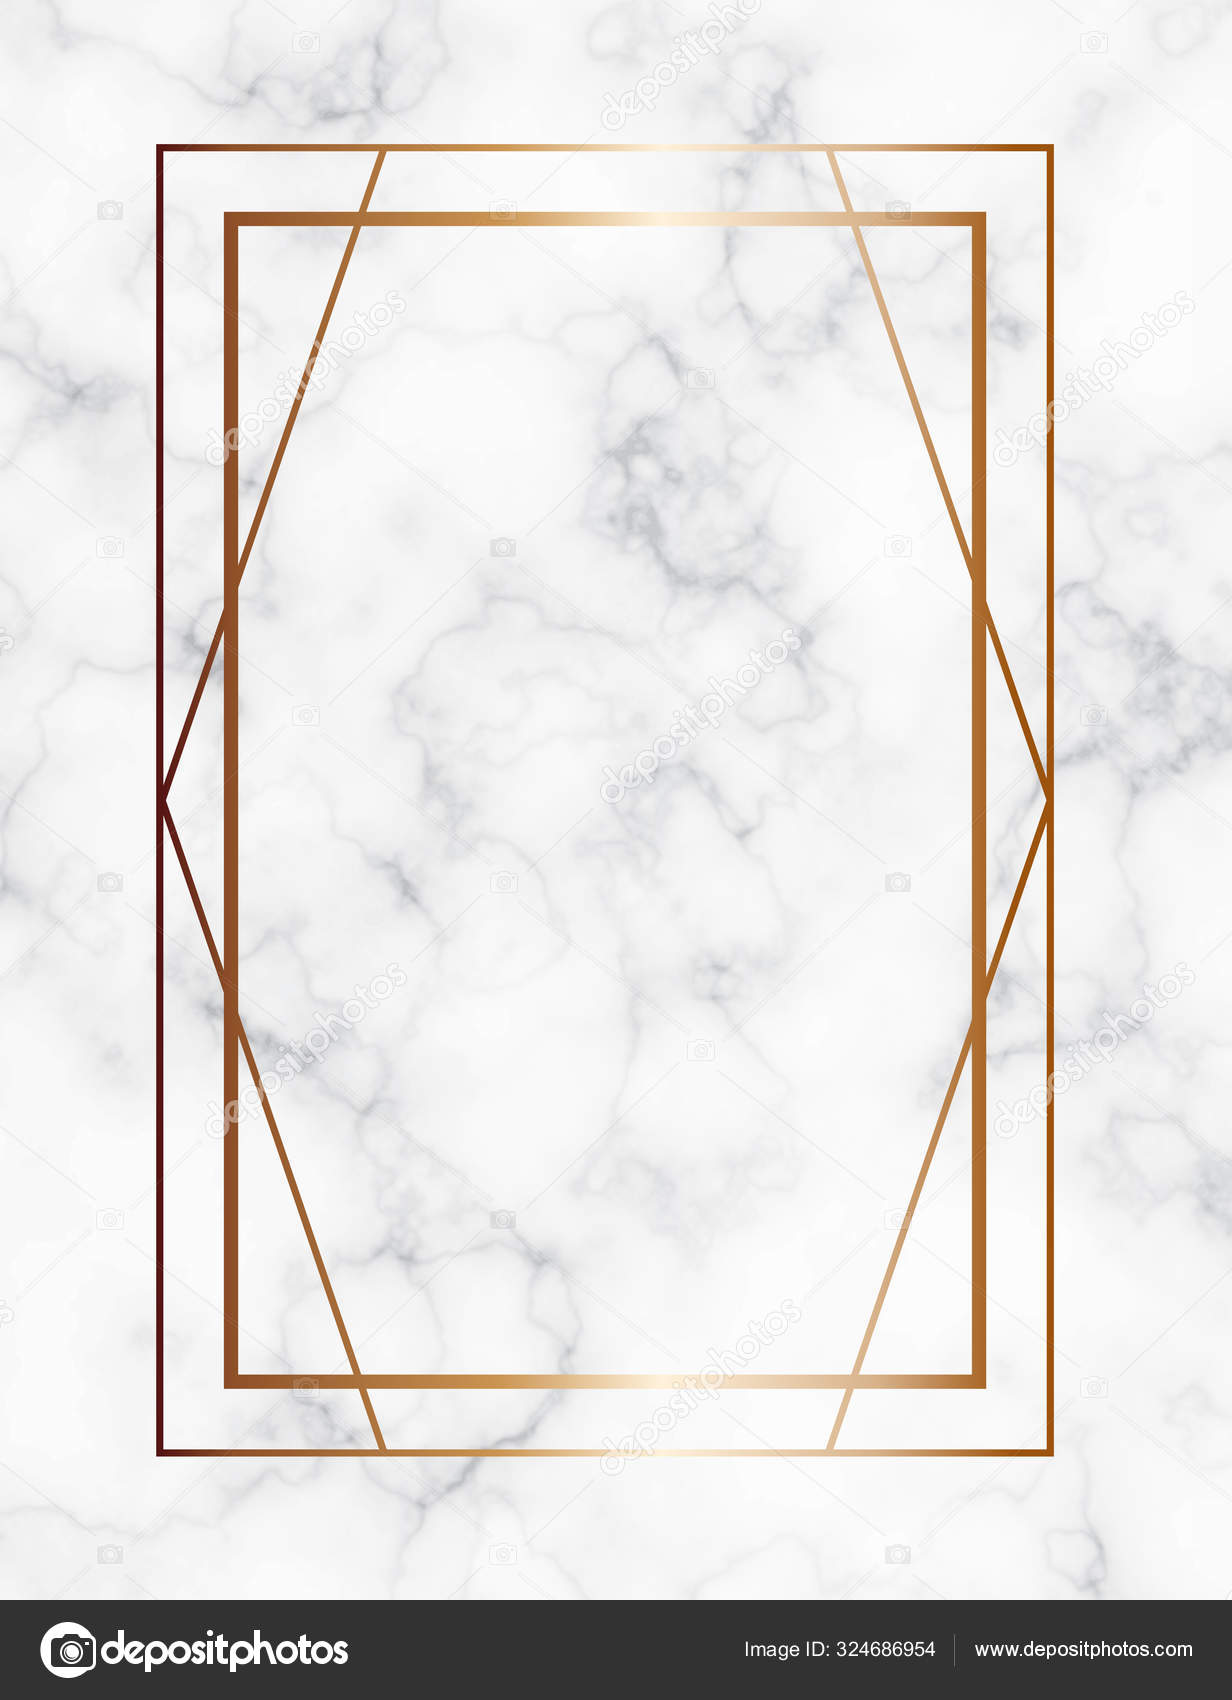 Marble Background With Gold Geometric Frame Luxury Template For Wedding Invitation Cards With White Marble Texture And Golden Geometric Pattern Stock Vector C Vesta2k Gmail Com 324686954